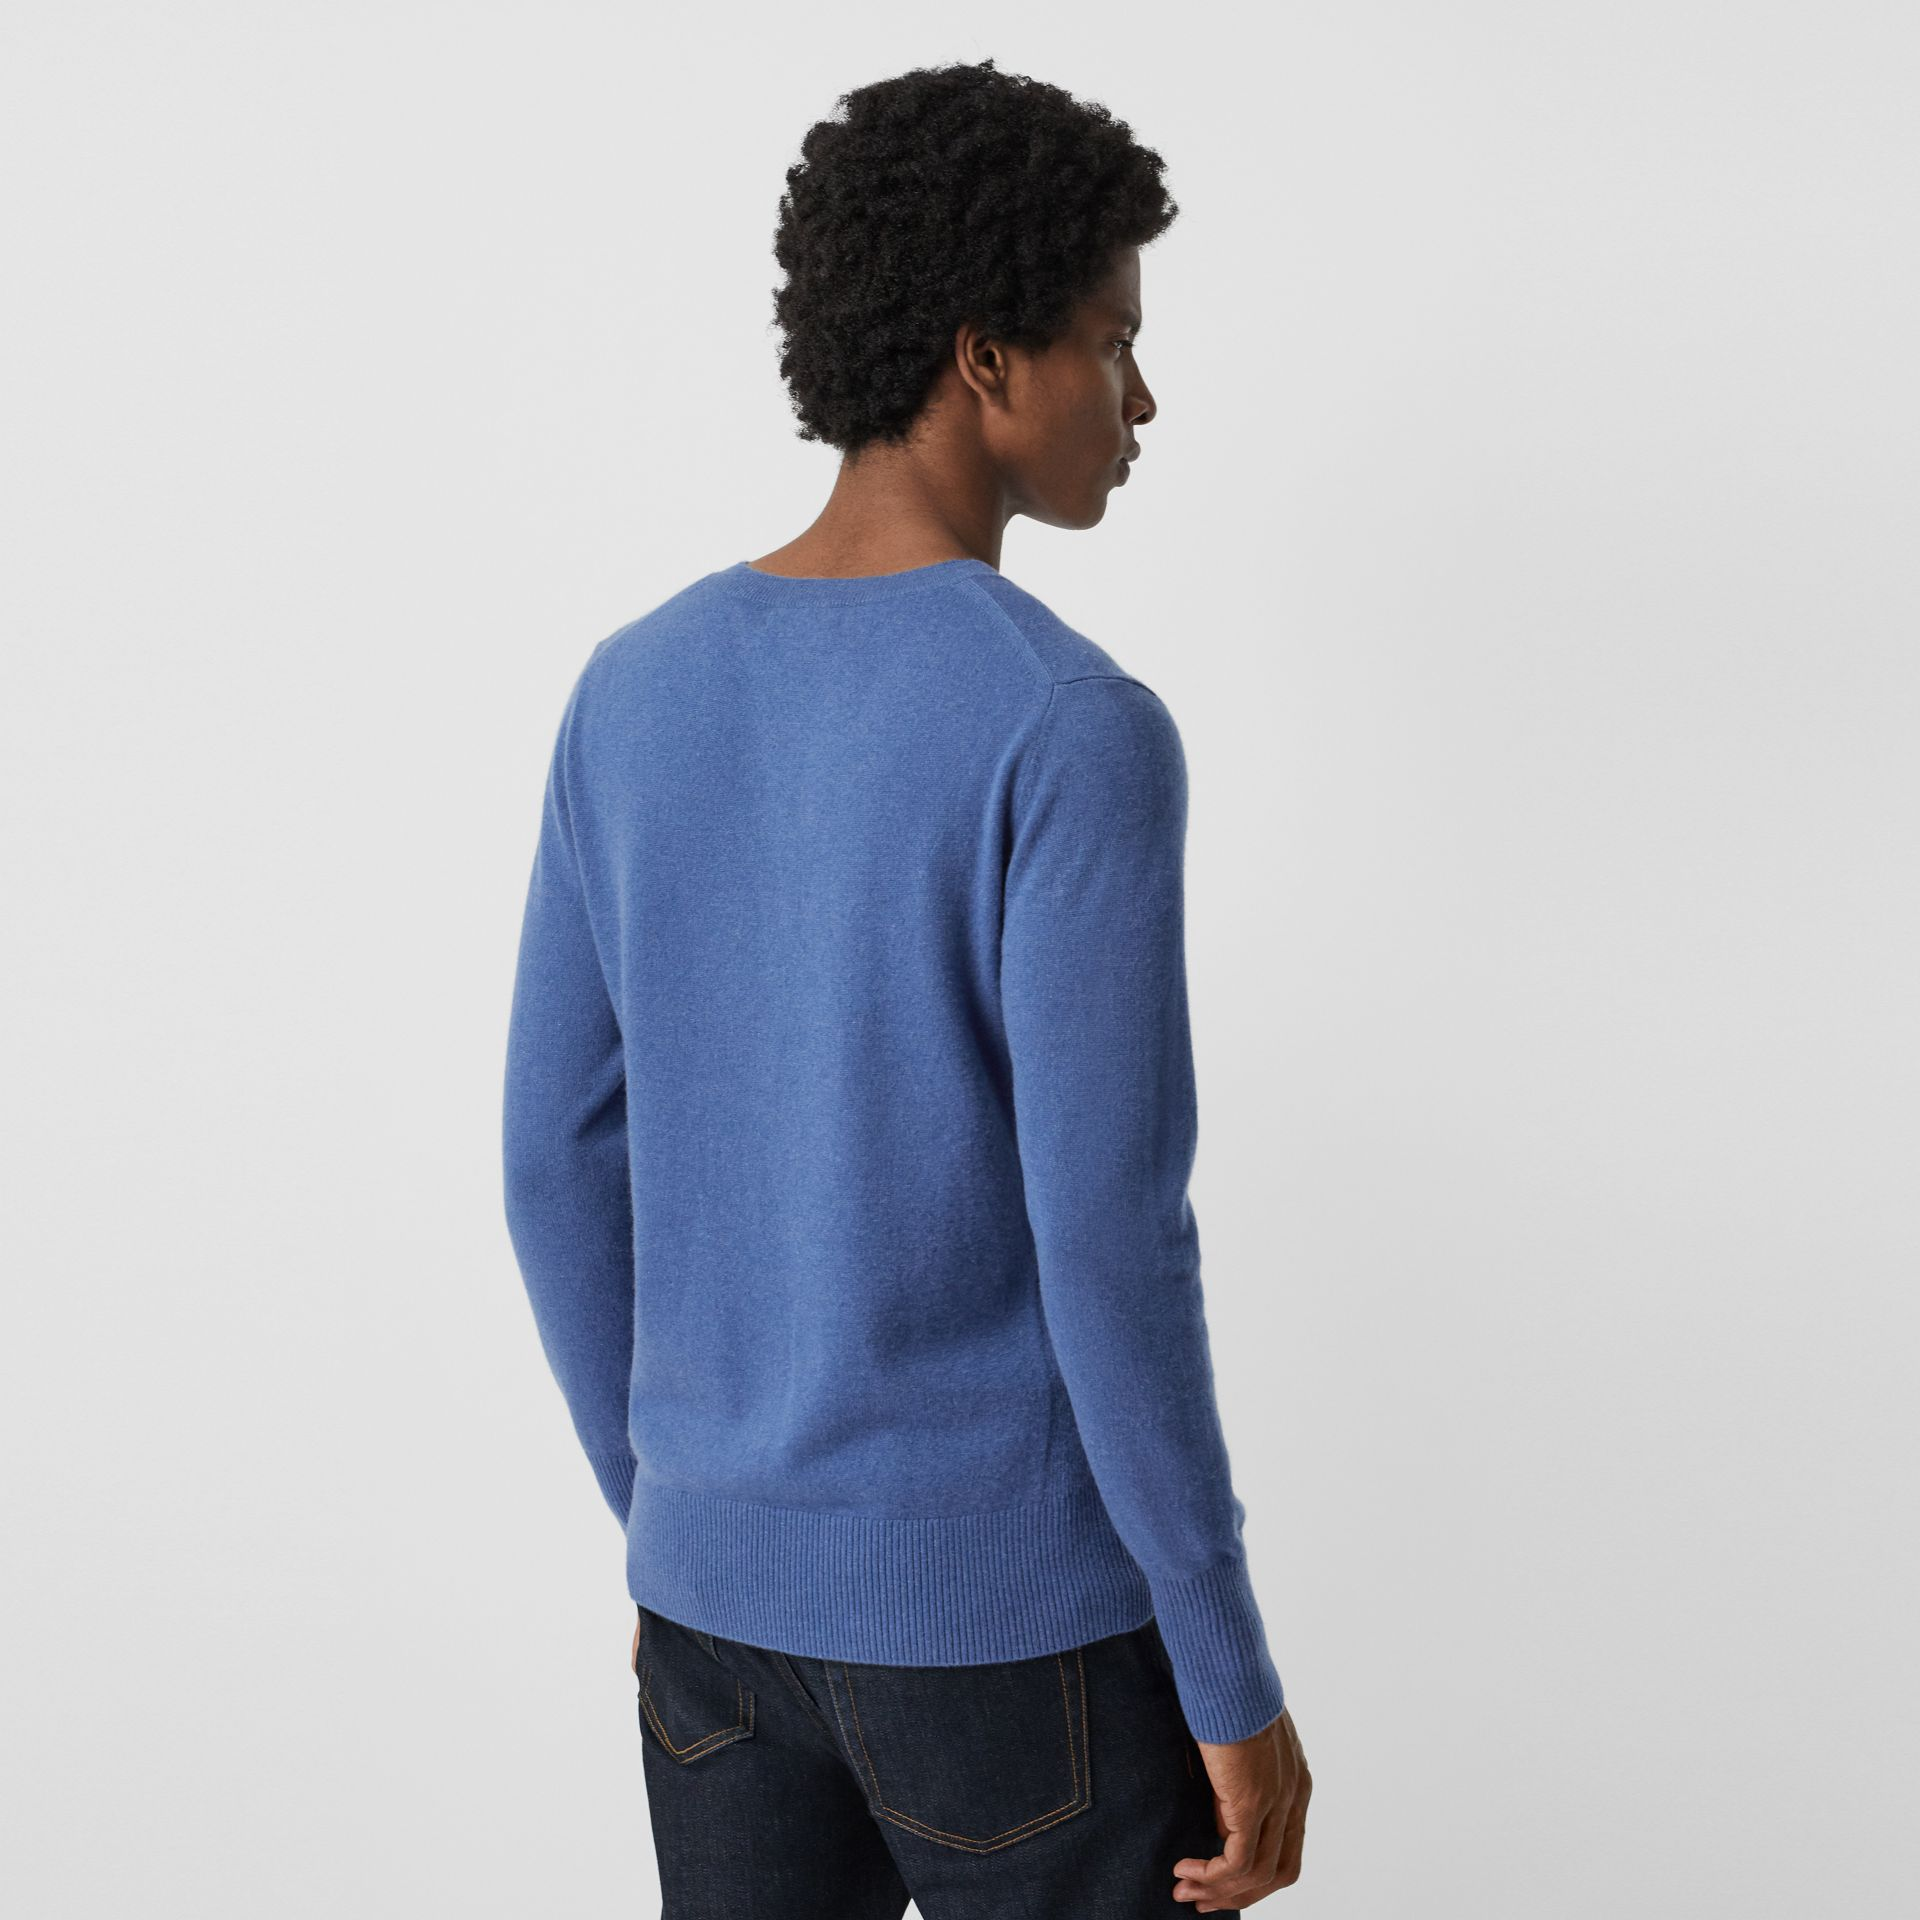 Embroidered Logo Cashmere Sweater in Dusty Blue - Men | Burberry United Kingdom - gallery image 2